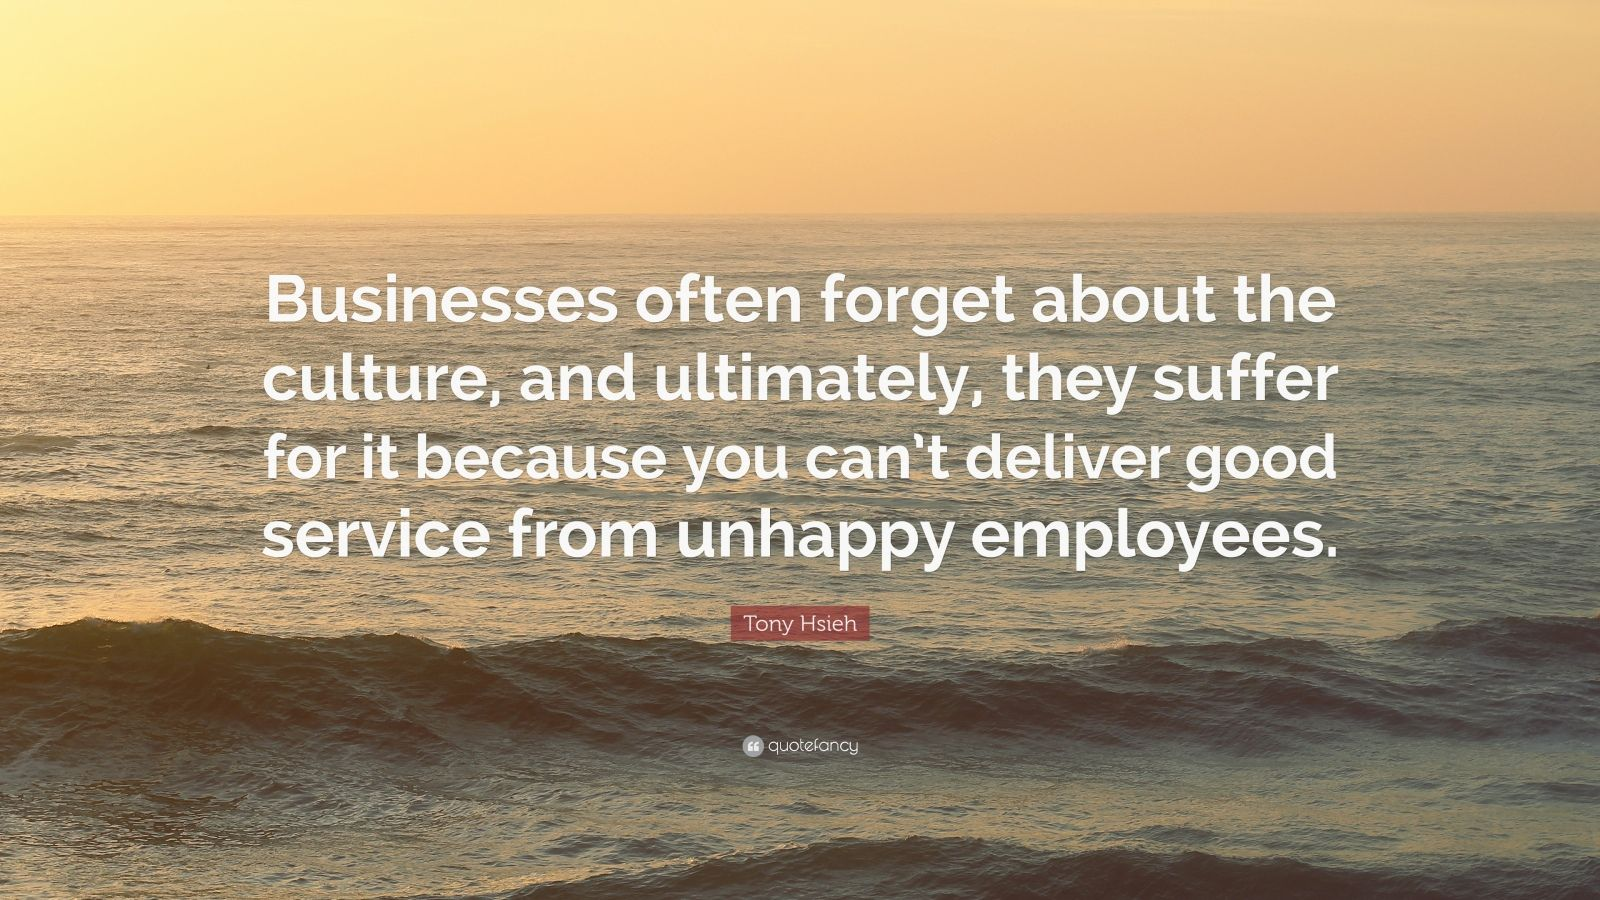 "Tony Hsieh Quote: ""Businesses often forget about the culture, and ultimately, they suffer for it because you can't deliver good service from unhappy employees."""